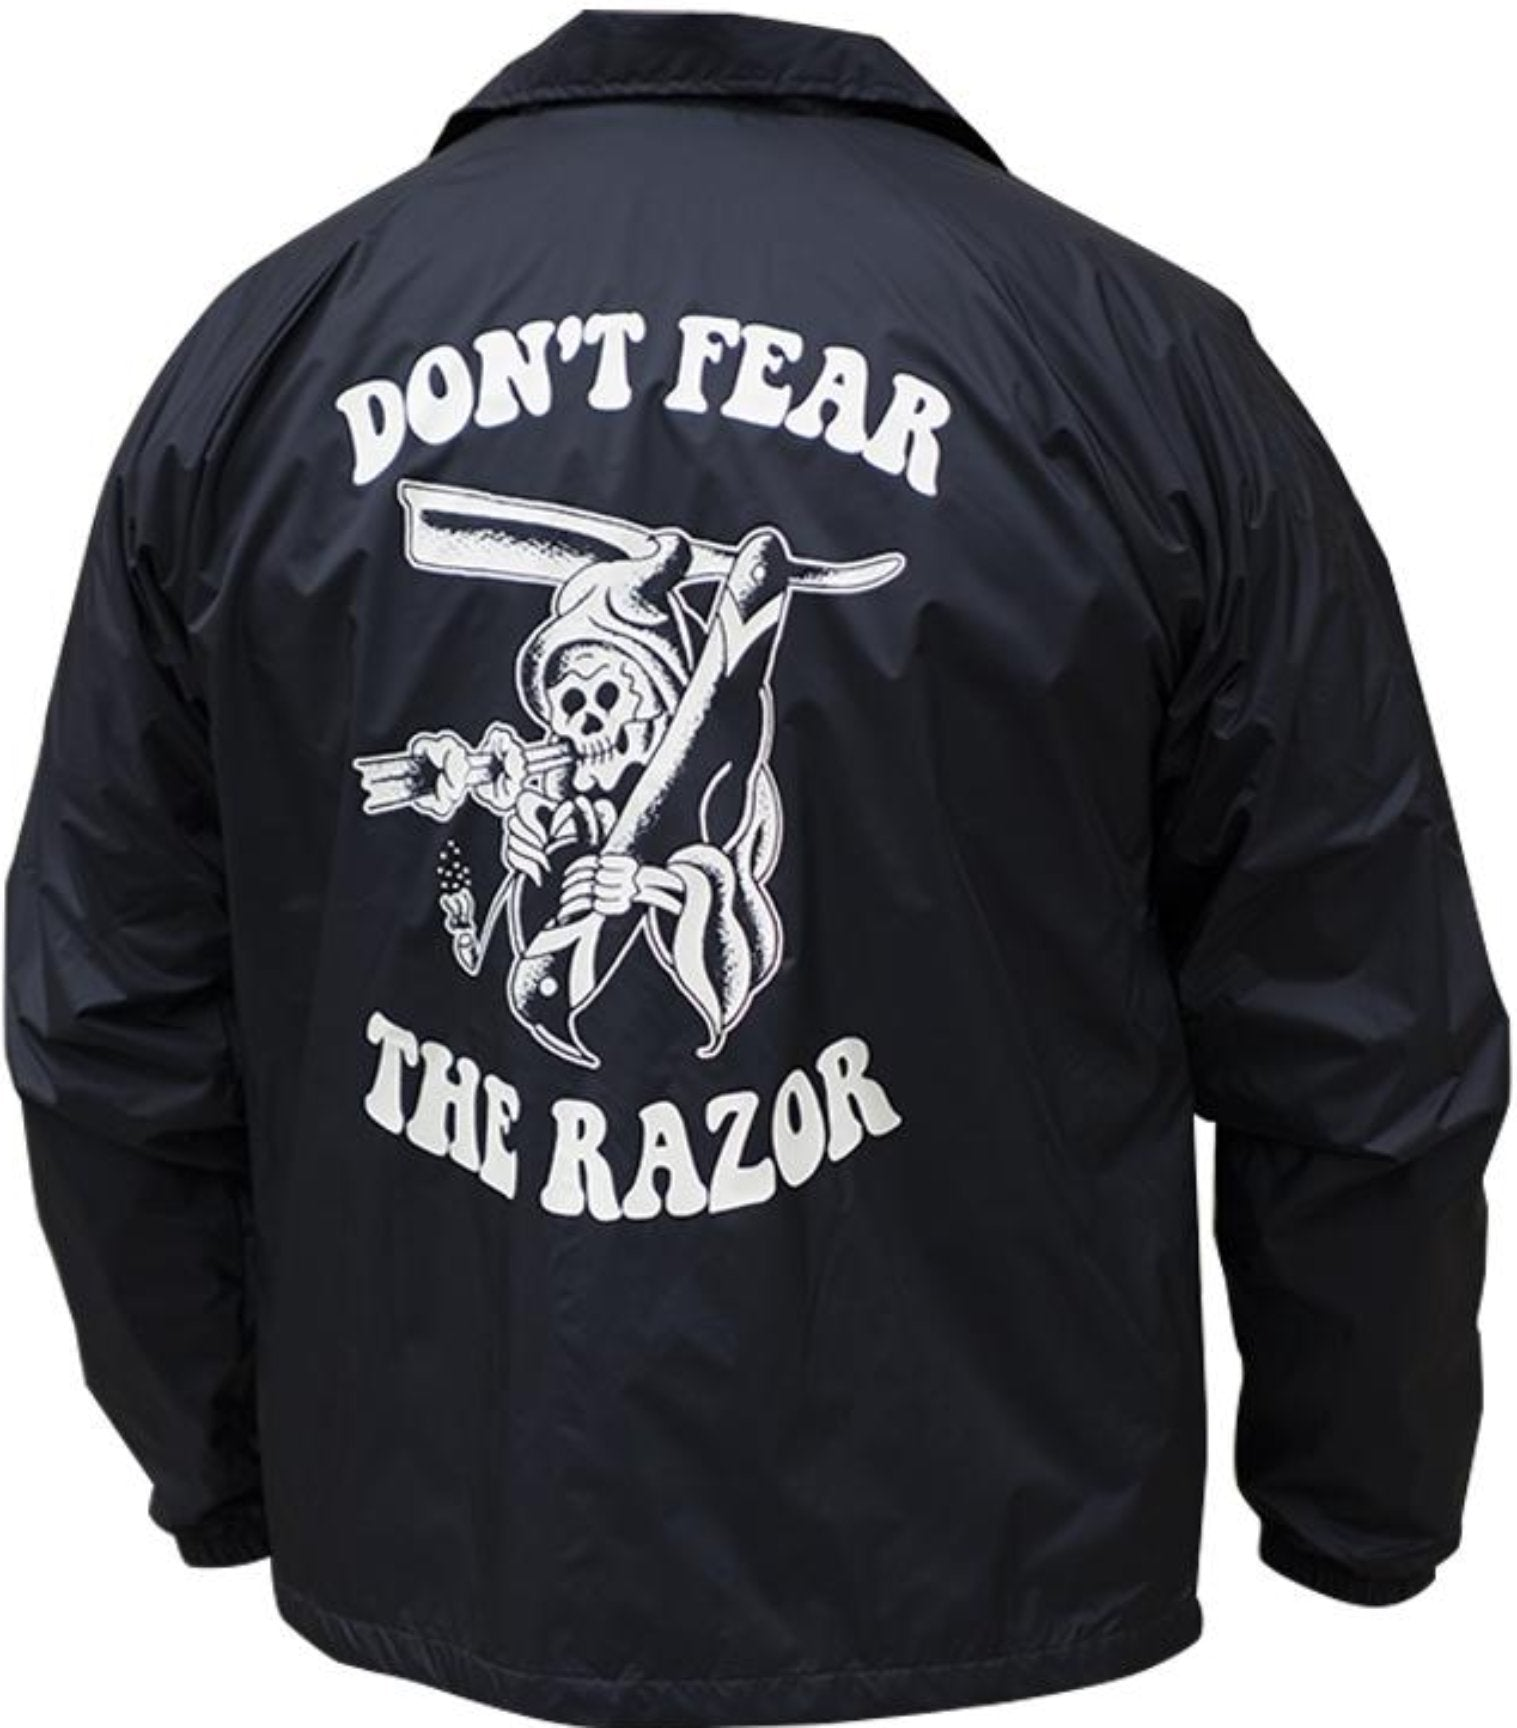 The DONT FEAR THE RAZOR Jacket